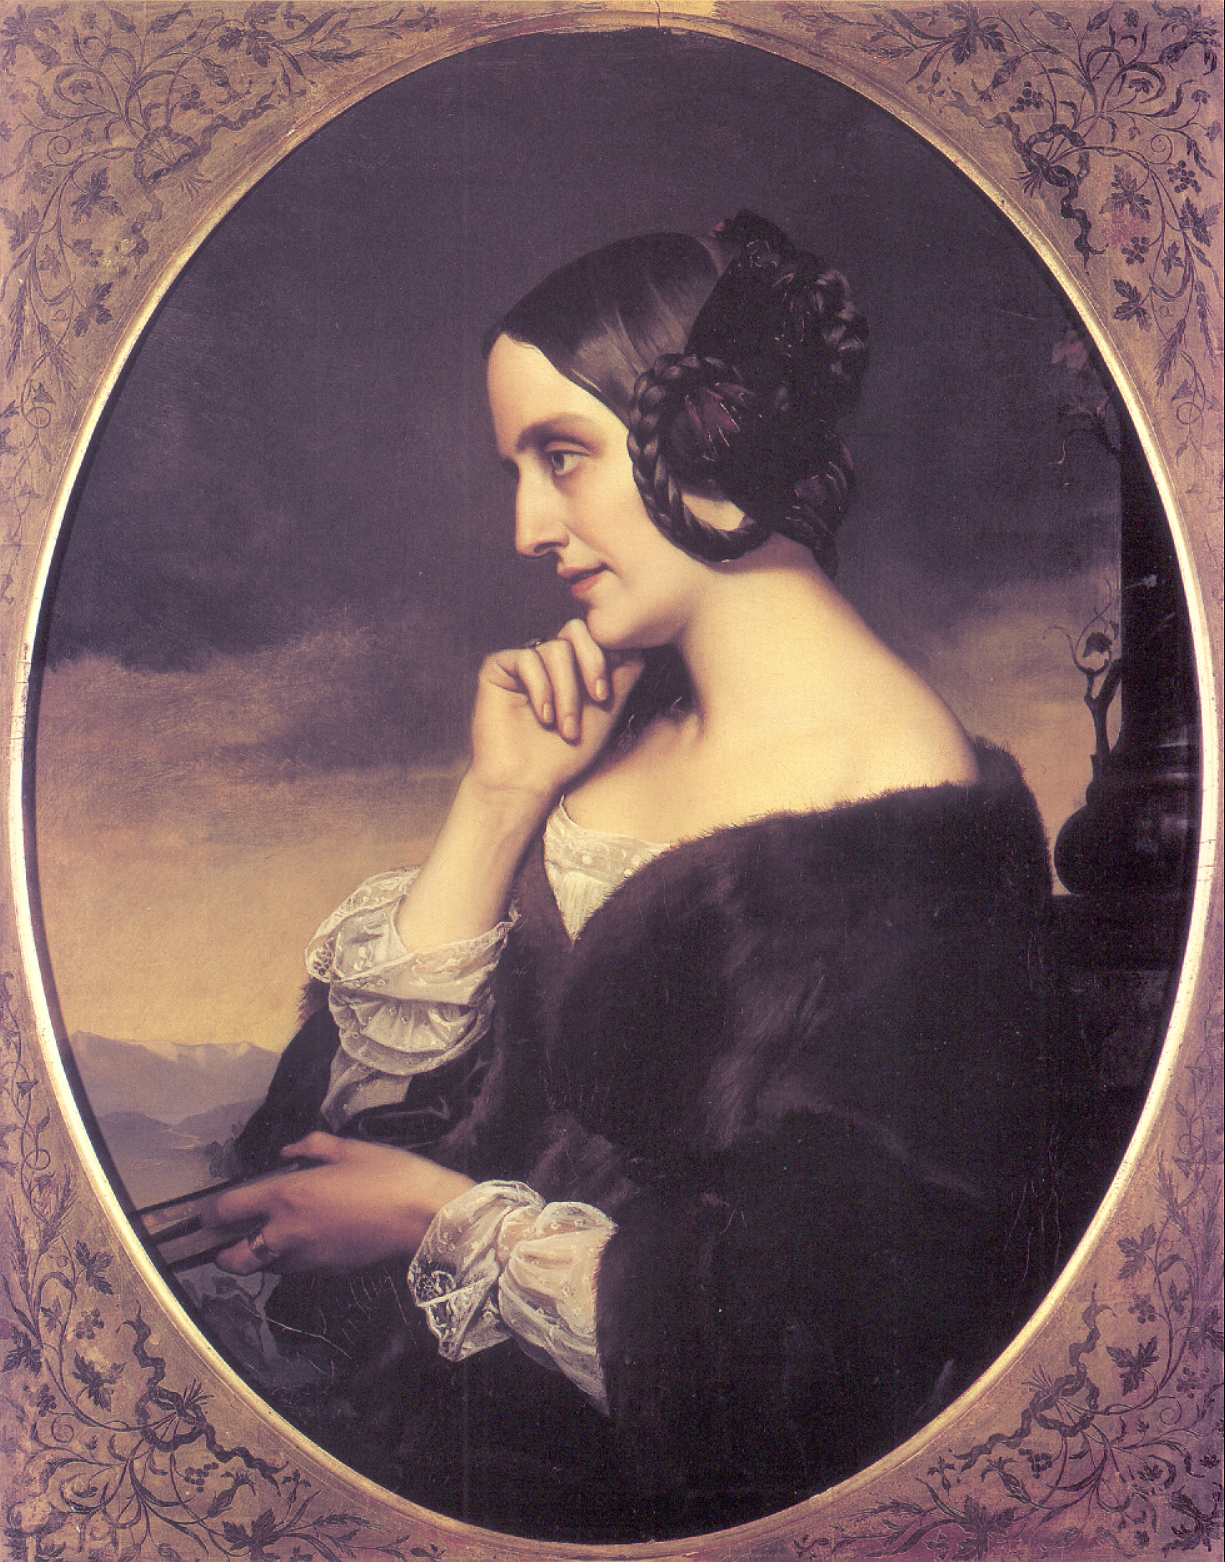 Marie d'Agoult (1805-1876) in 1843